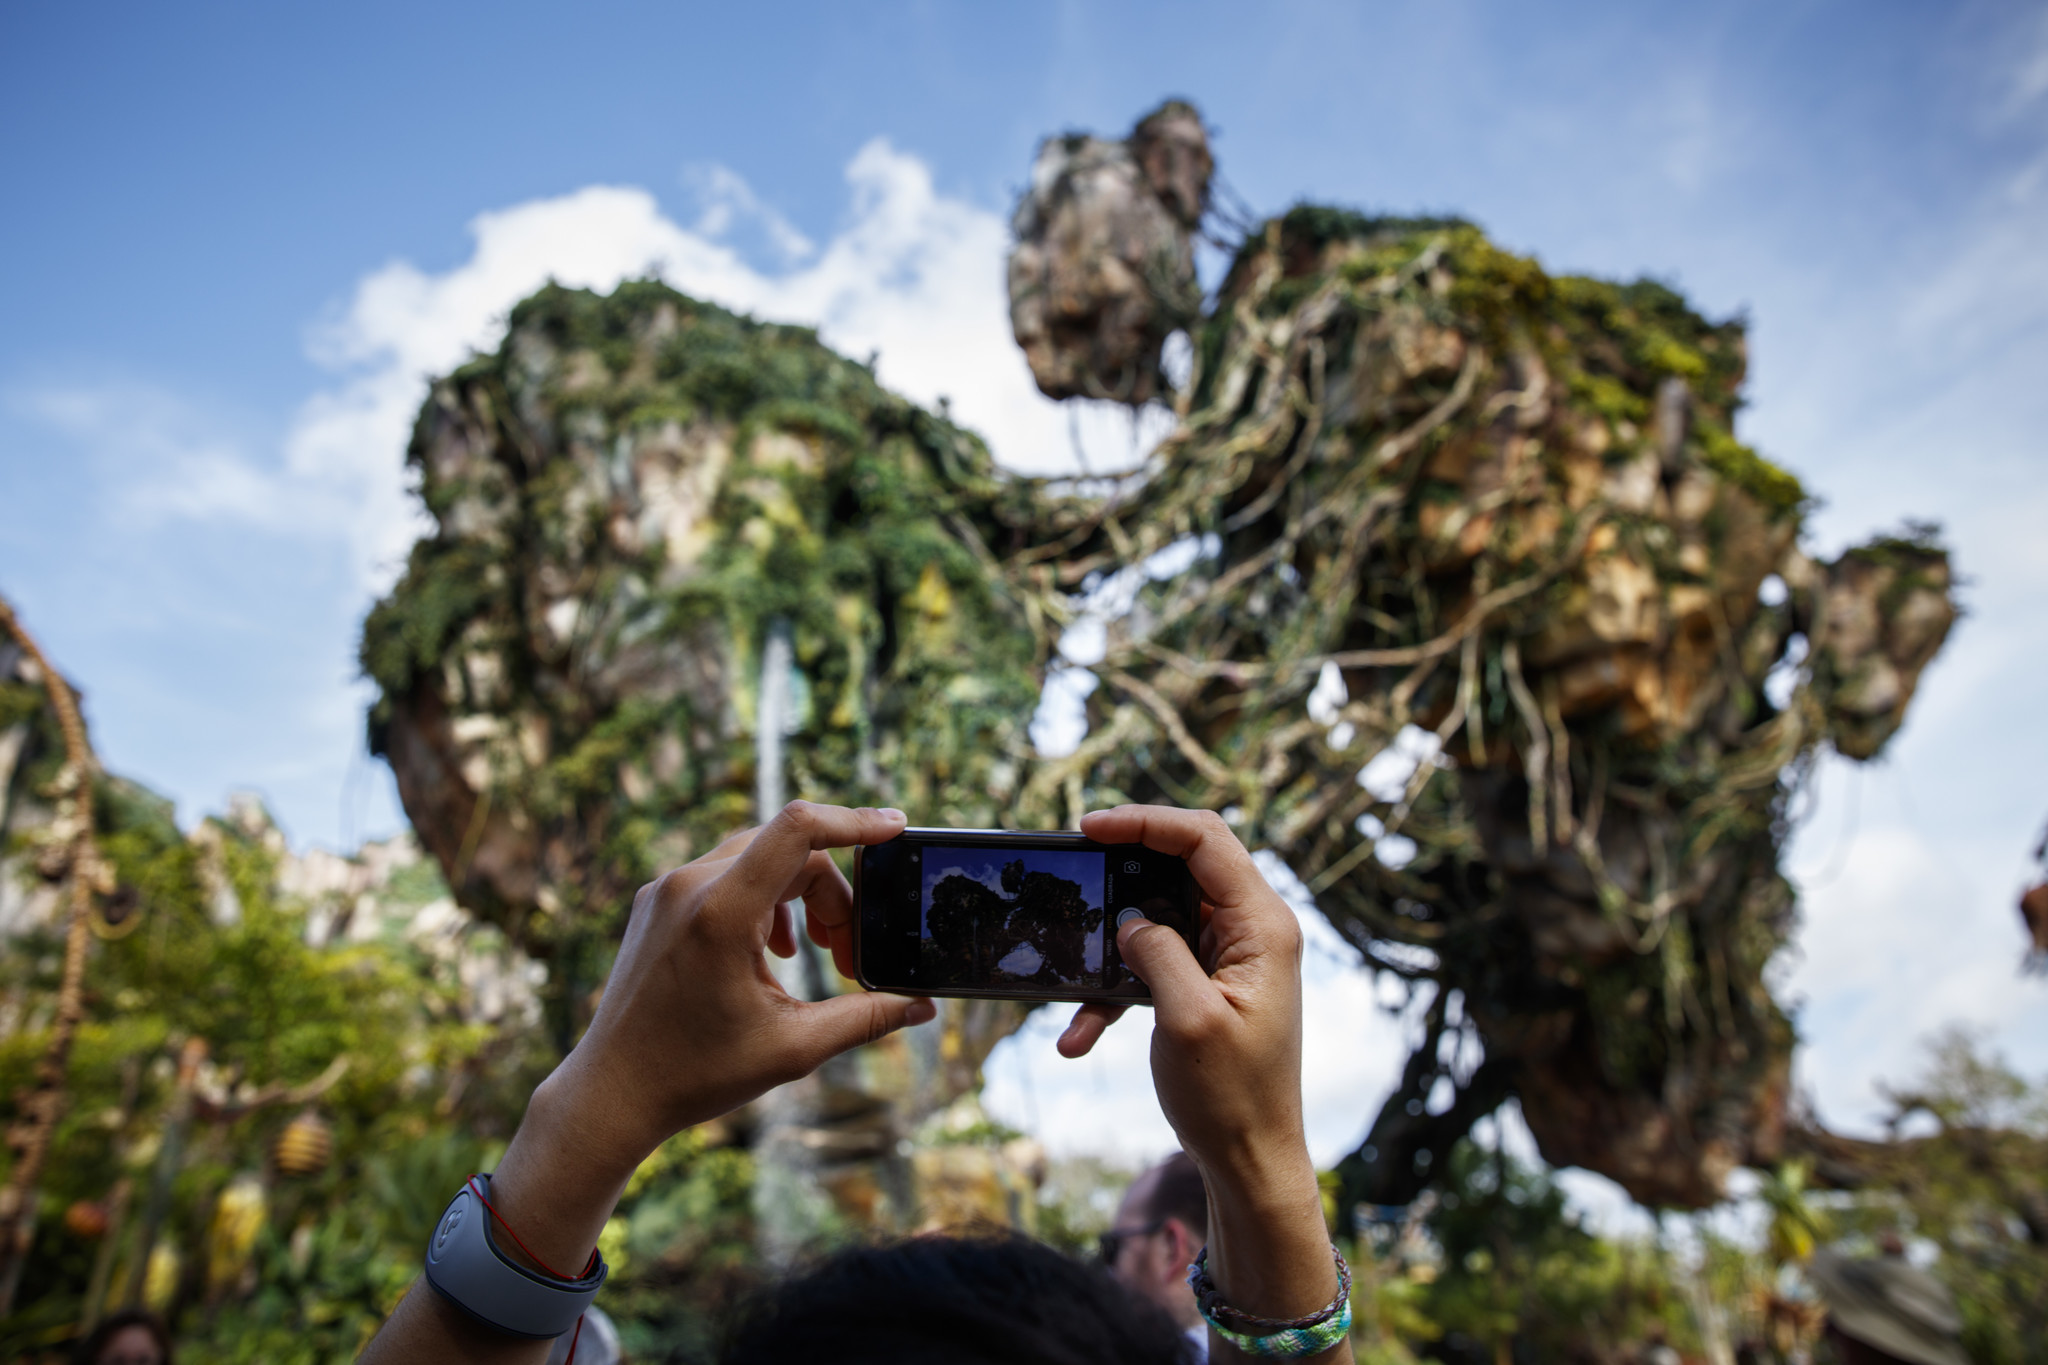 """A visitor takes a photo of the floating mountains of Pandora. Click to see more photos from inside Disney's new """"Avatar""""-inspired Pandora park in Orlando, Fla."""